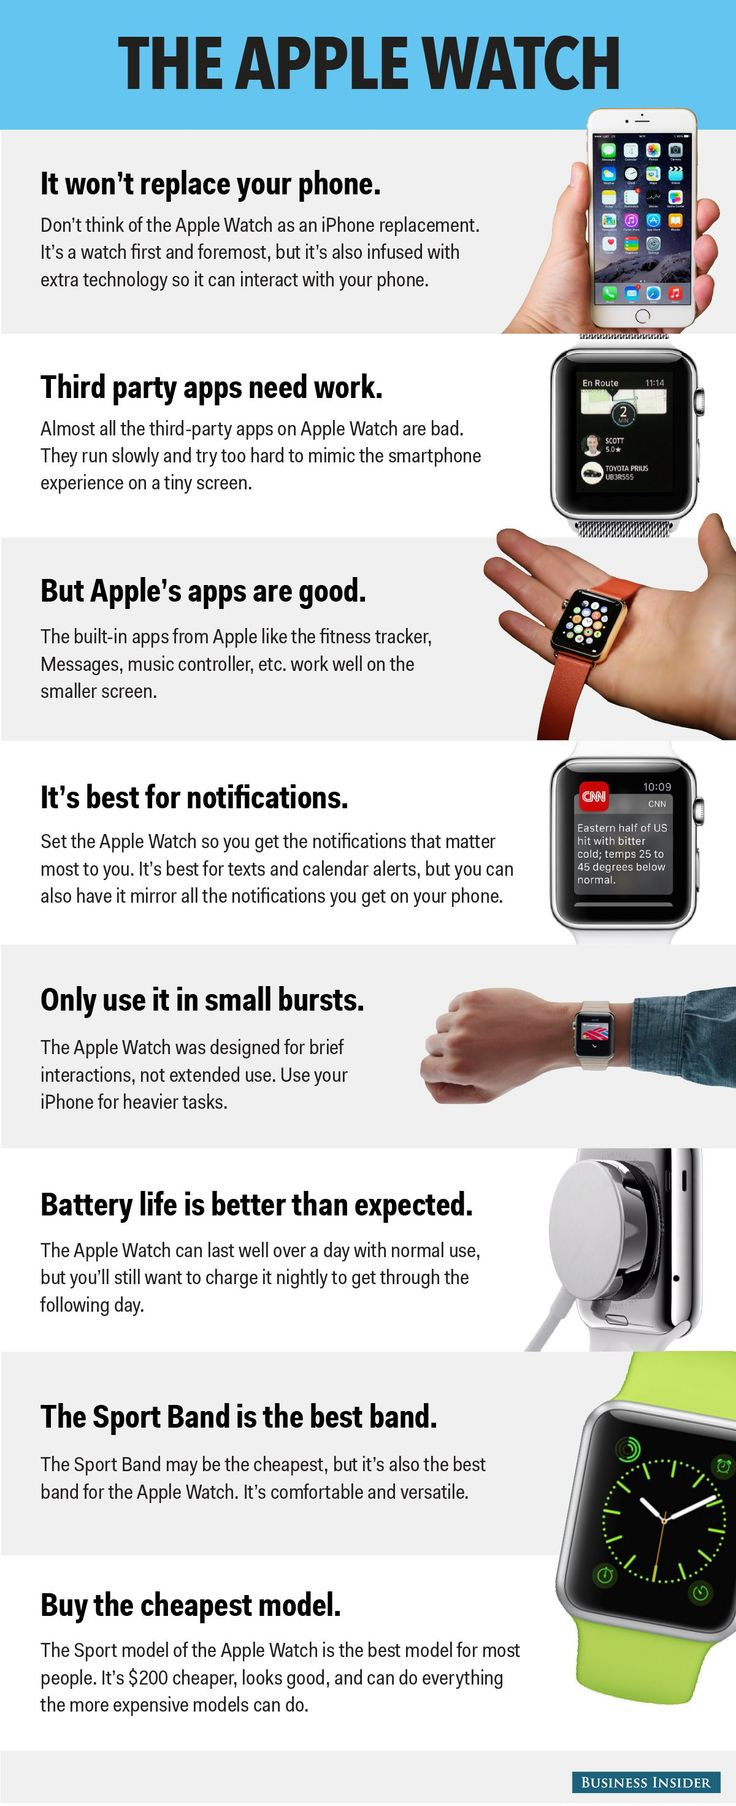 Should you buy the Apple Watch?